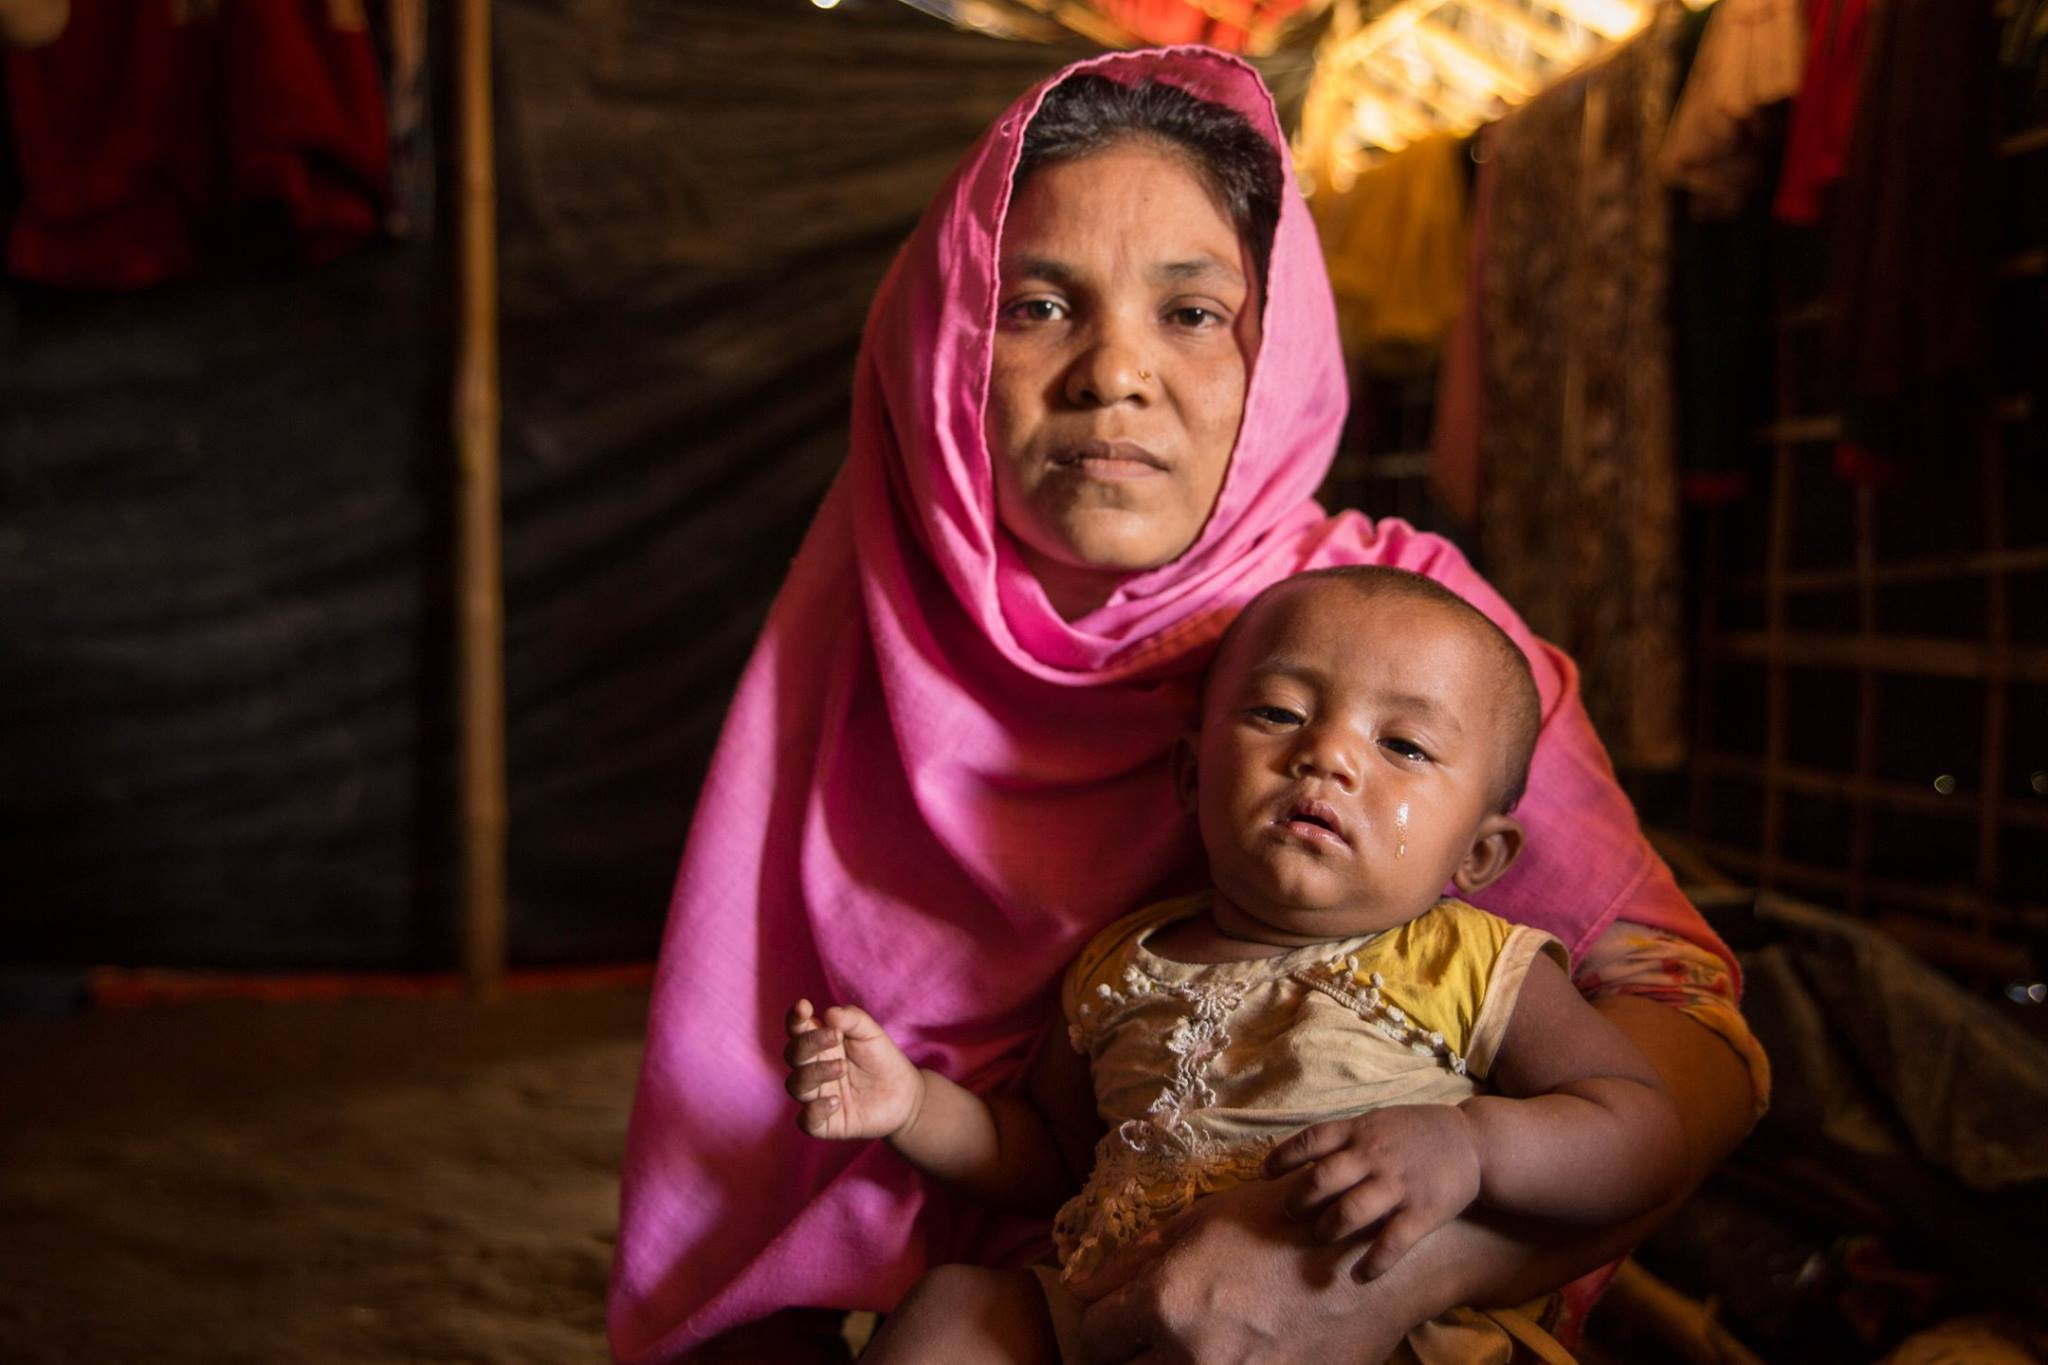 Diphtheria cases on the rise among Rohingya refugees, children